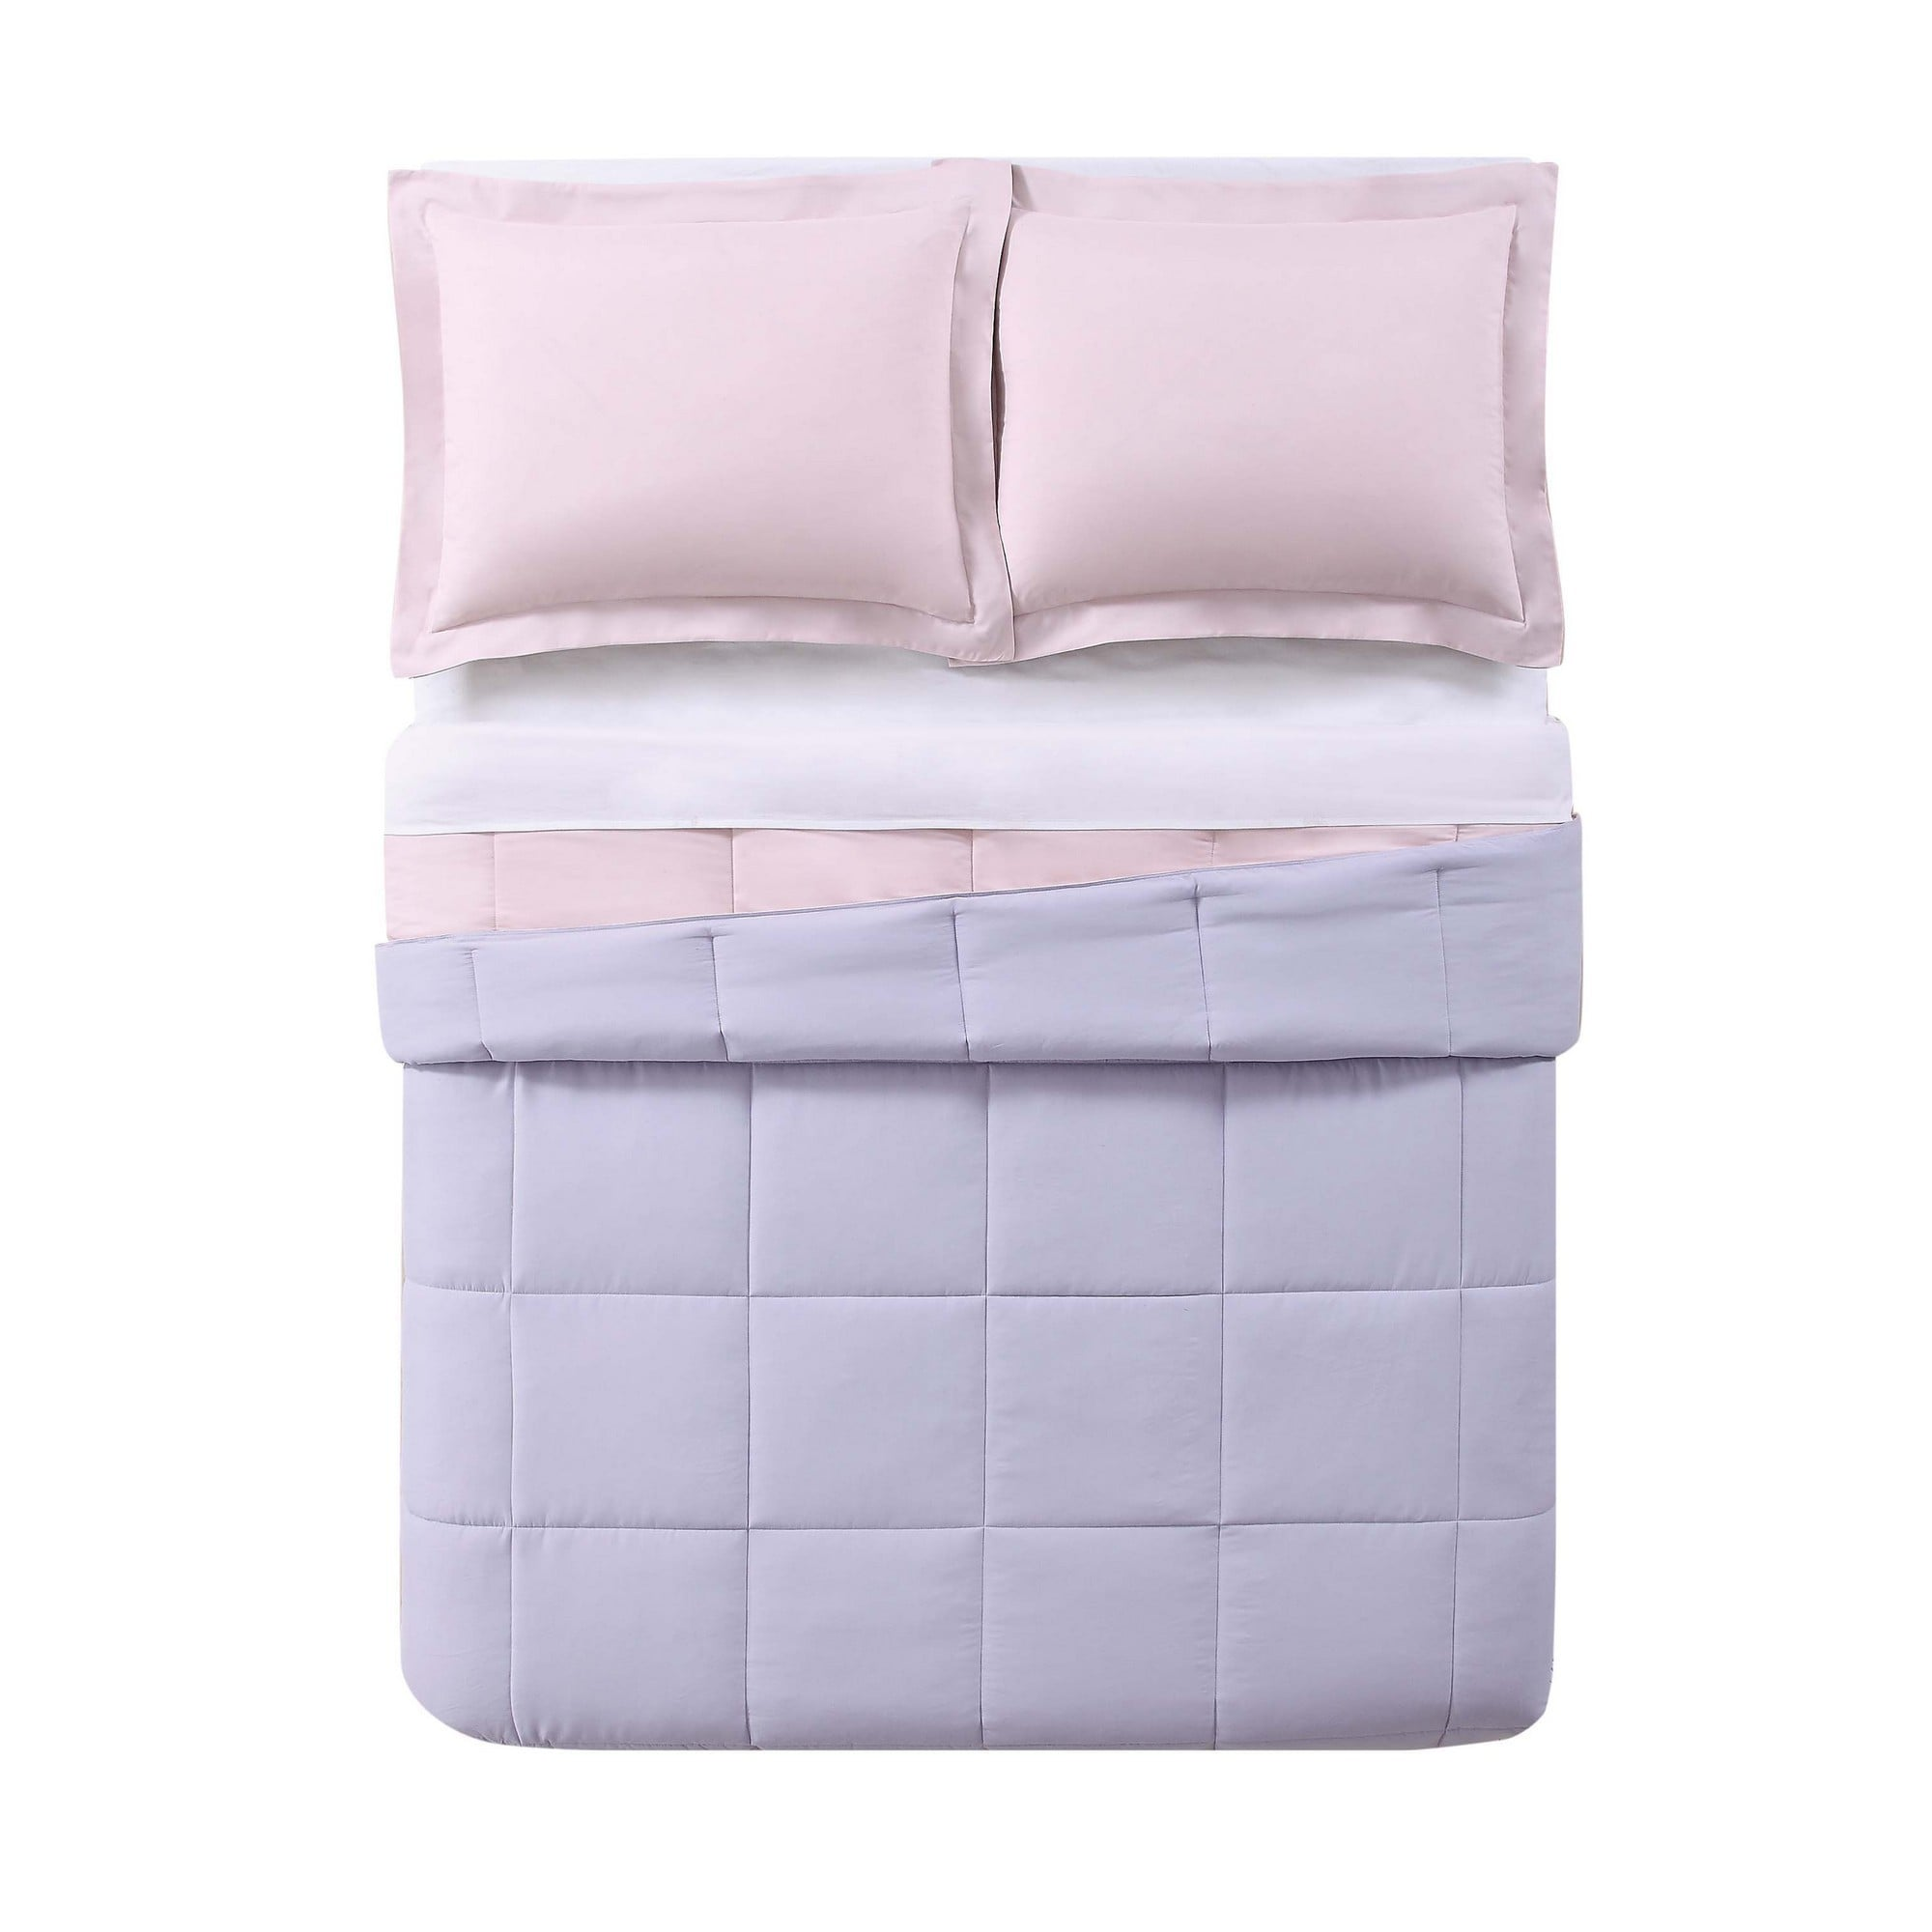 overstock free fiesta bedskirt bath set luna pintuck shipping piece comforter color solid included product cotton today bedding